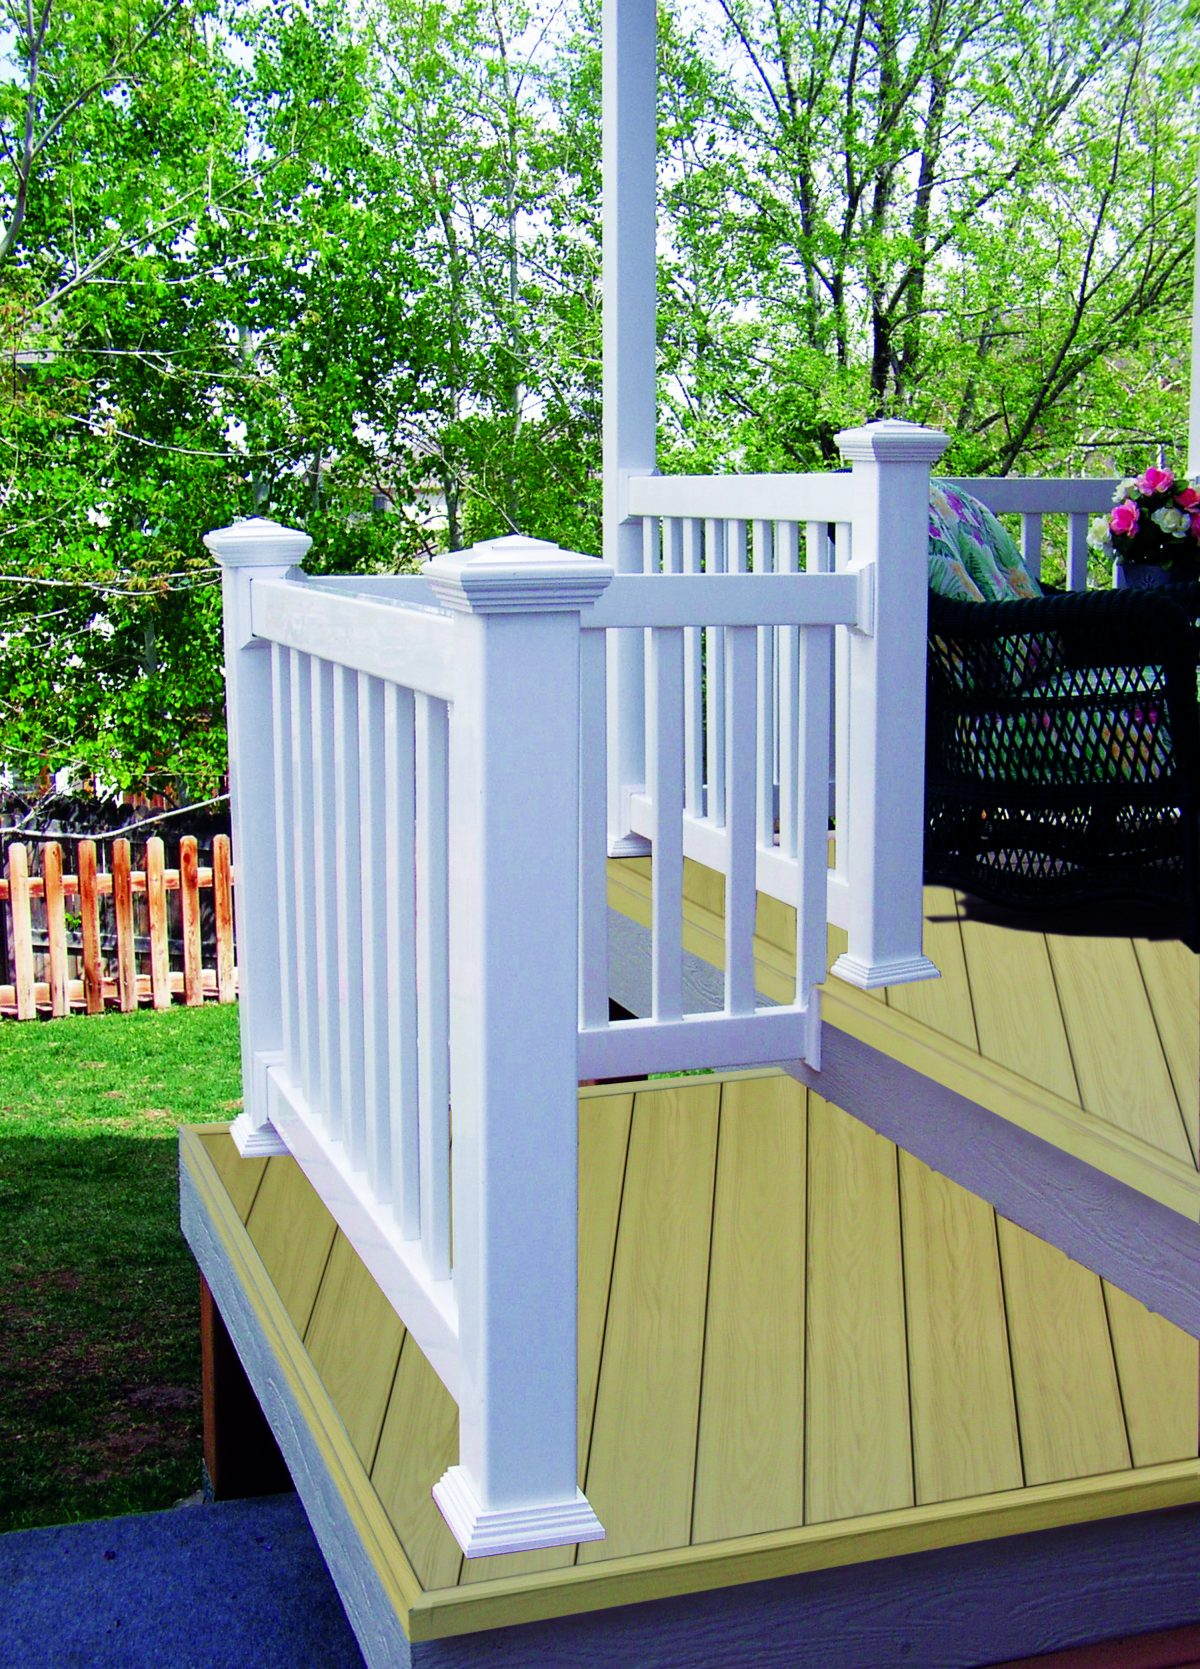 Duramax designing vinyl fences that would last for a lifetime – We are the top Vinyl Fence Manufacturers in Orange County